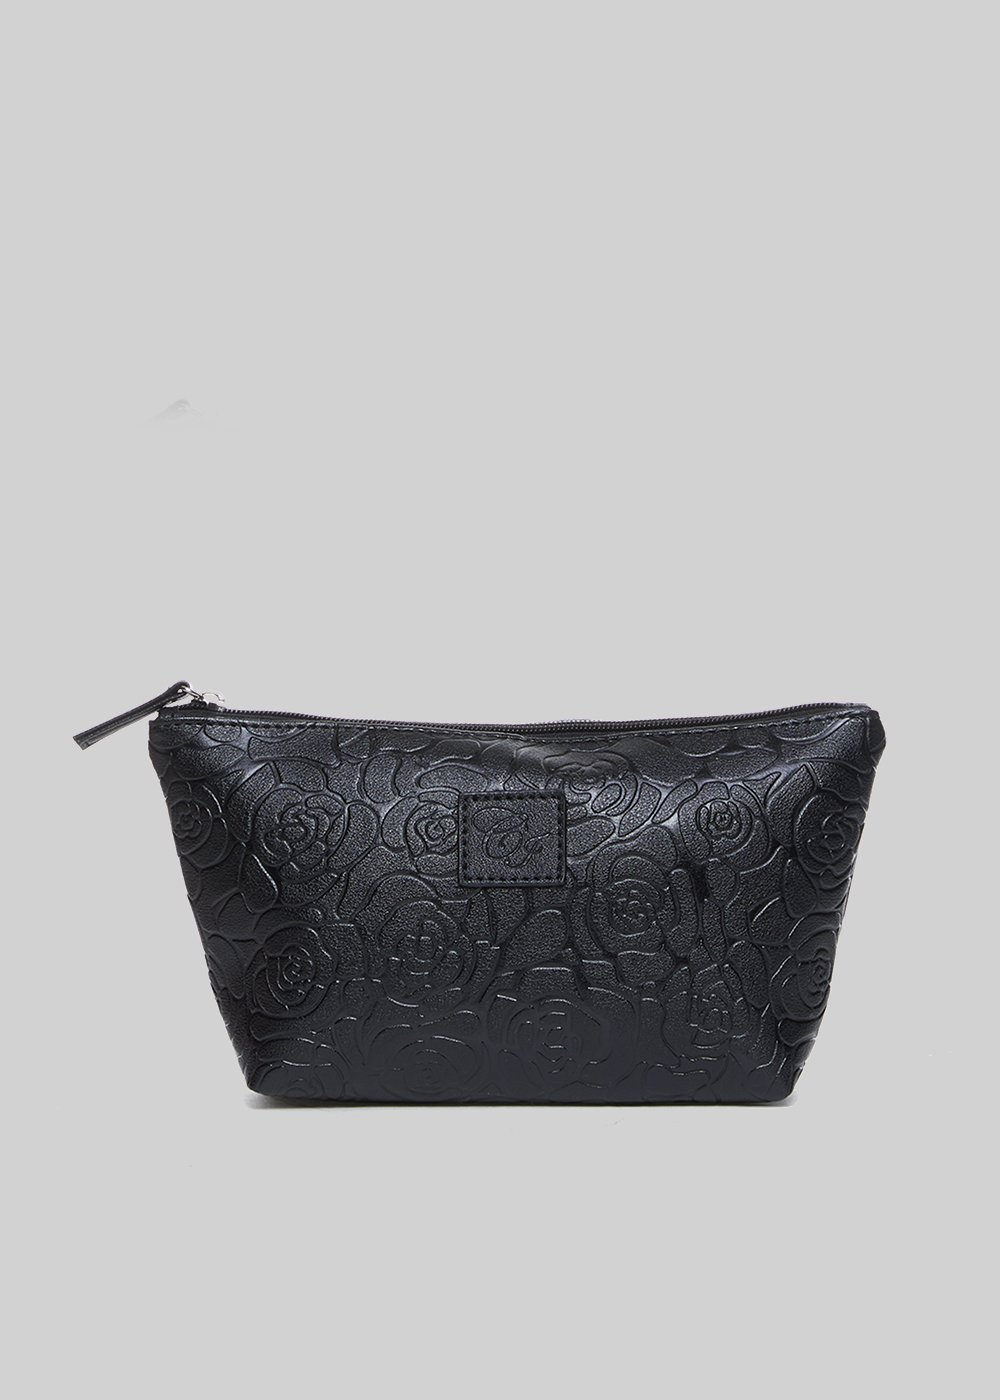 Beauty Blur in faux leather roses embossed - Black